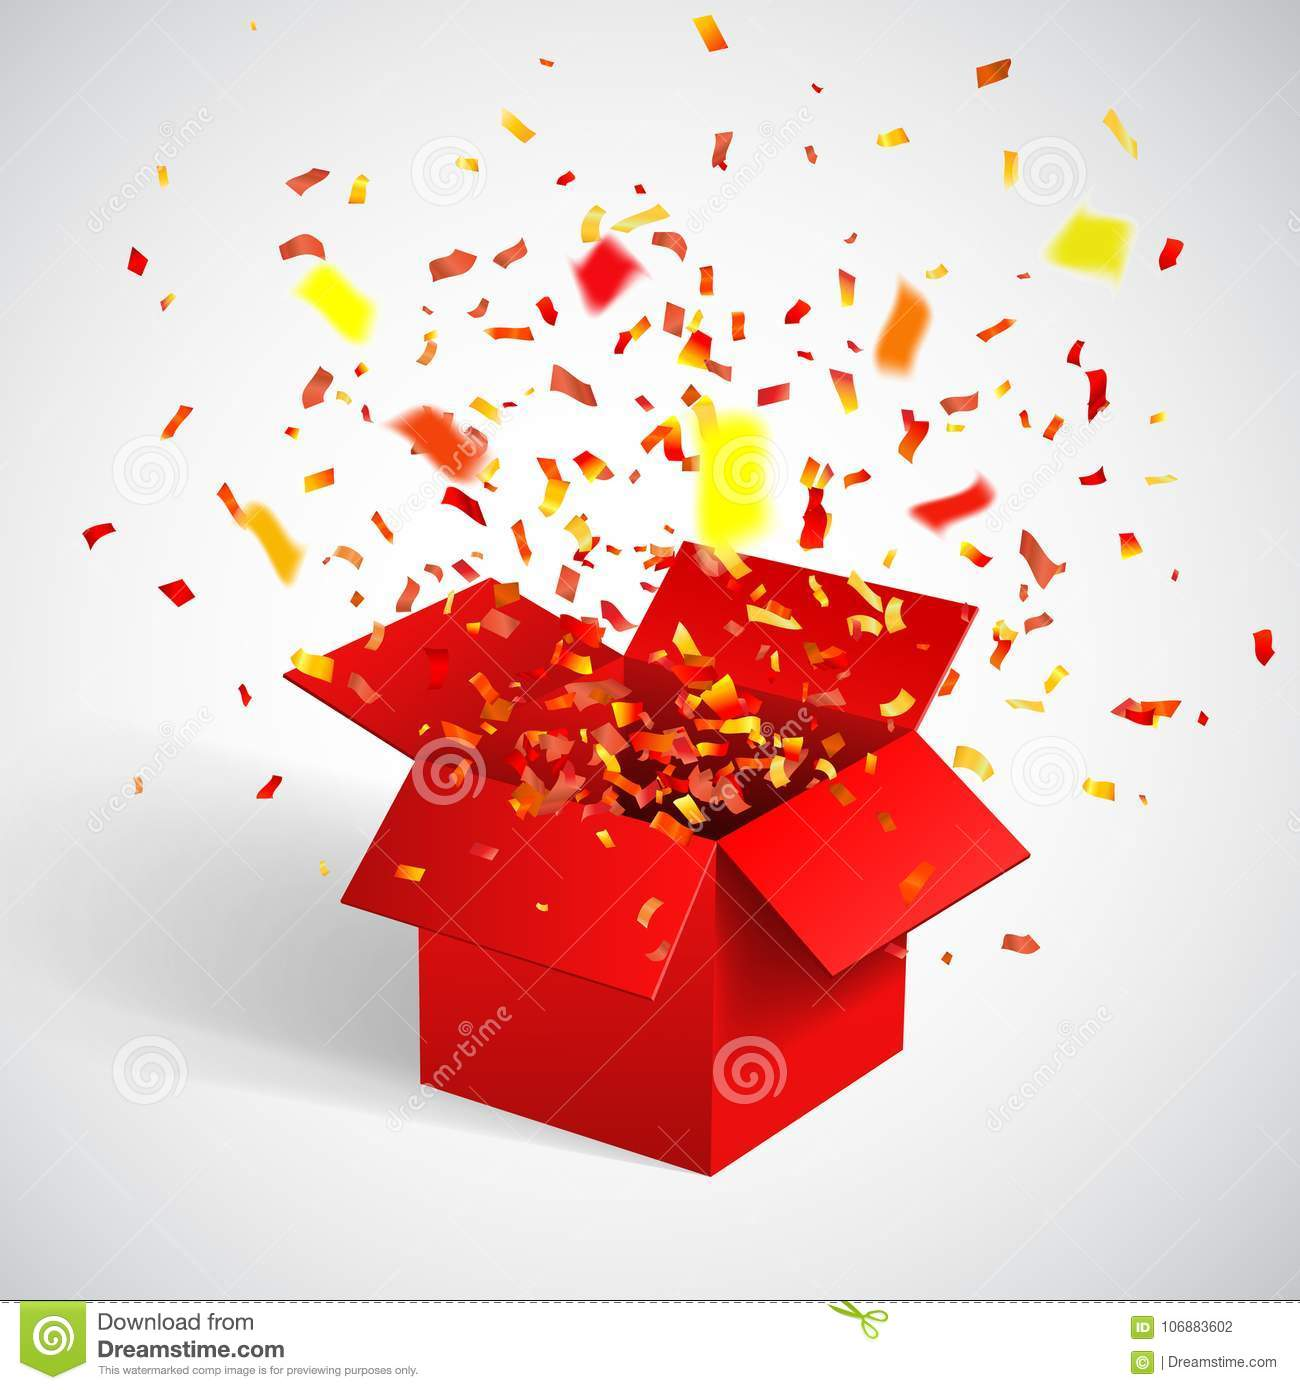 Open Red Gift Box and Confetti. Christmas Background. Vector Illustration.  sc 1 st  Dreamstime.com & Open Red Gift Box And Confetti. Christmas Background. Vector ...